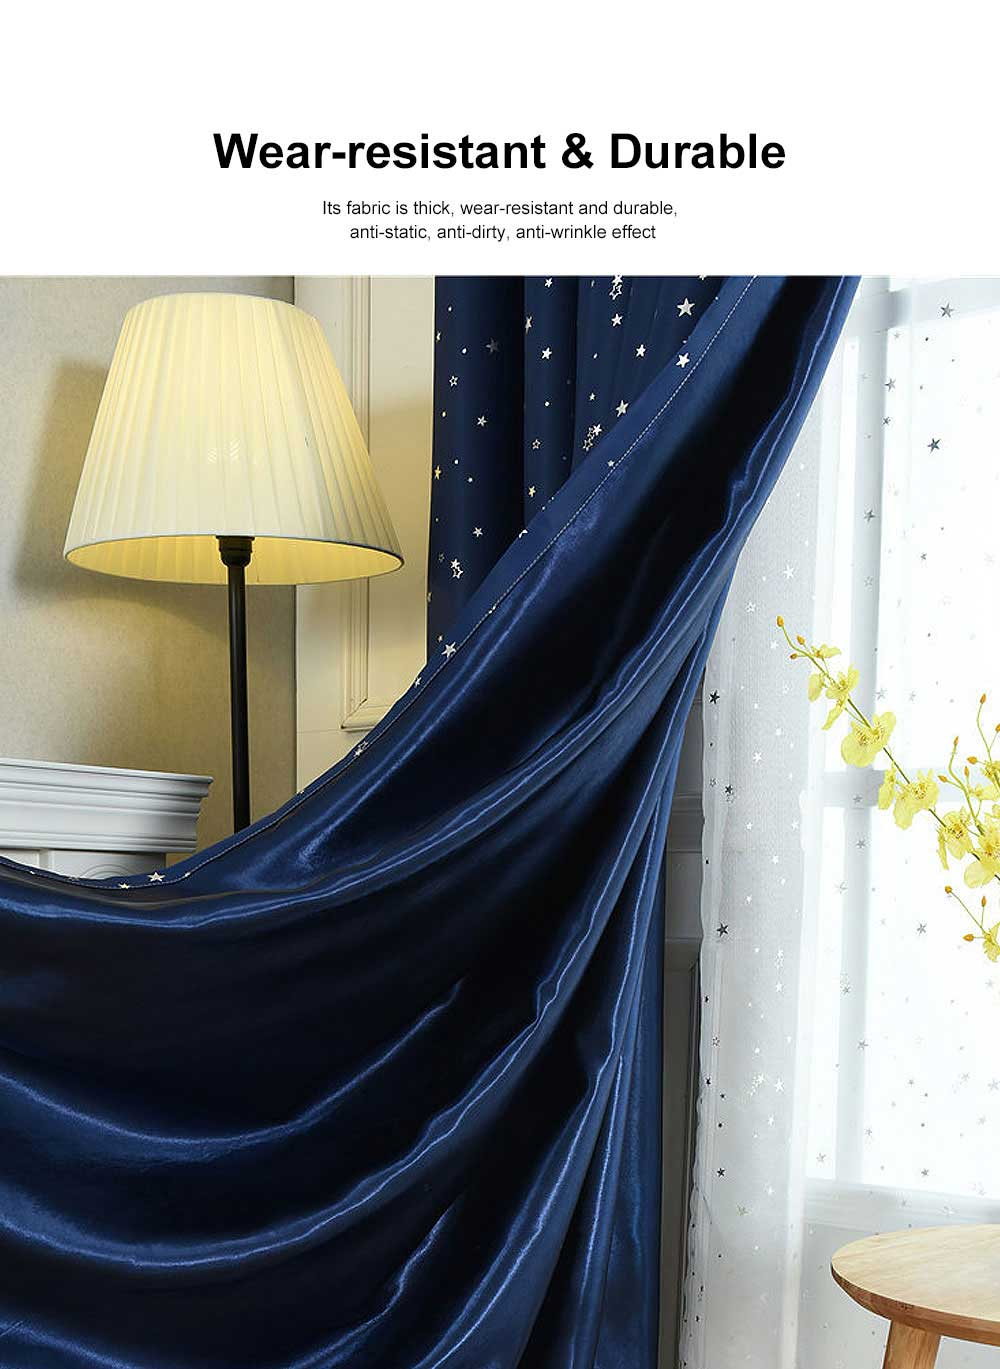 Star Hot Silver Curtain, Multicolor Curtains for Hotel Engineering, Living Room, Bedroom, High-quality Flannel Curtain 1